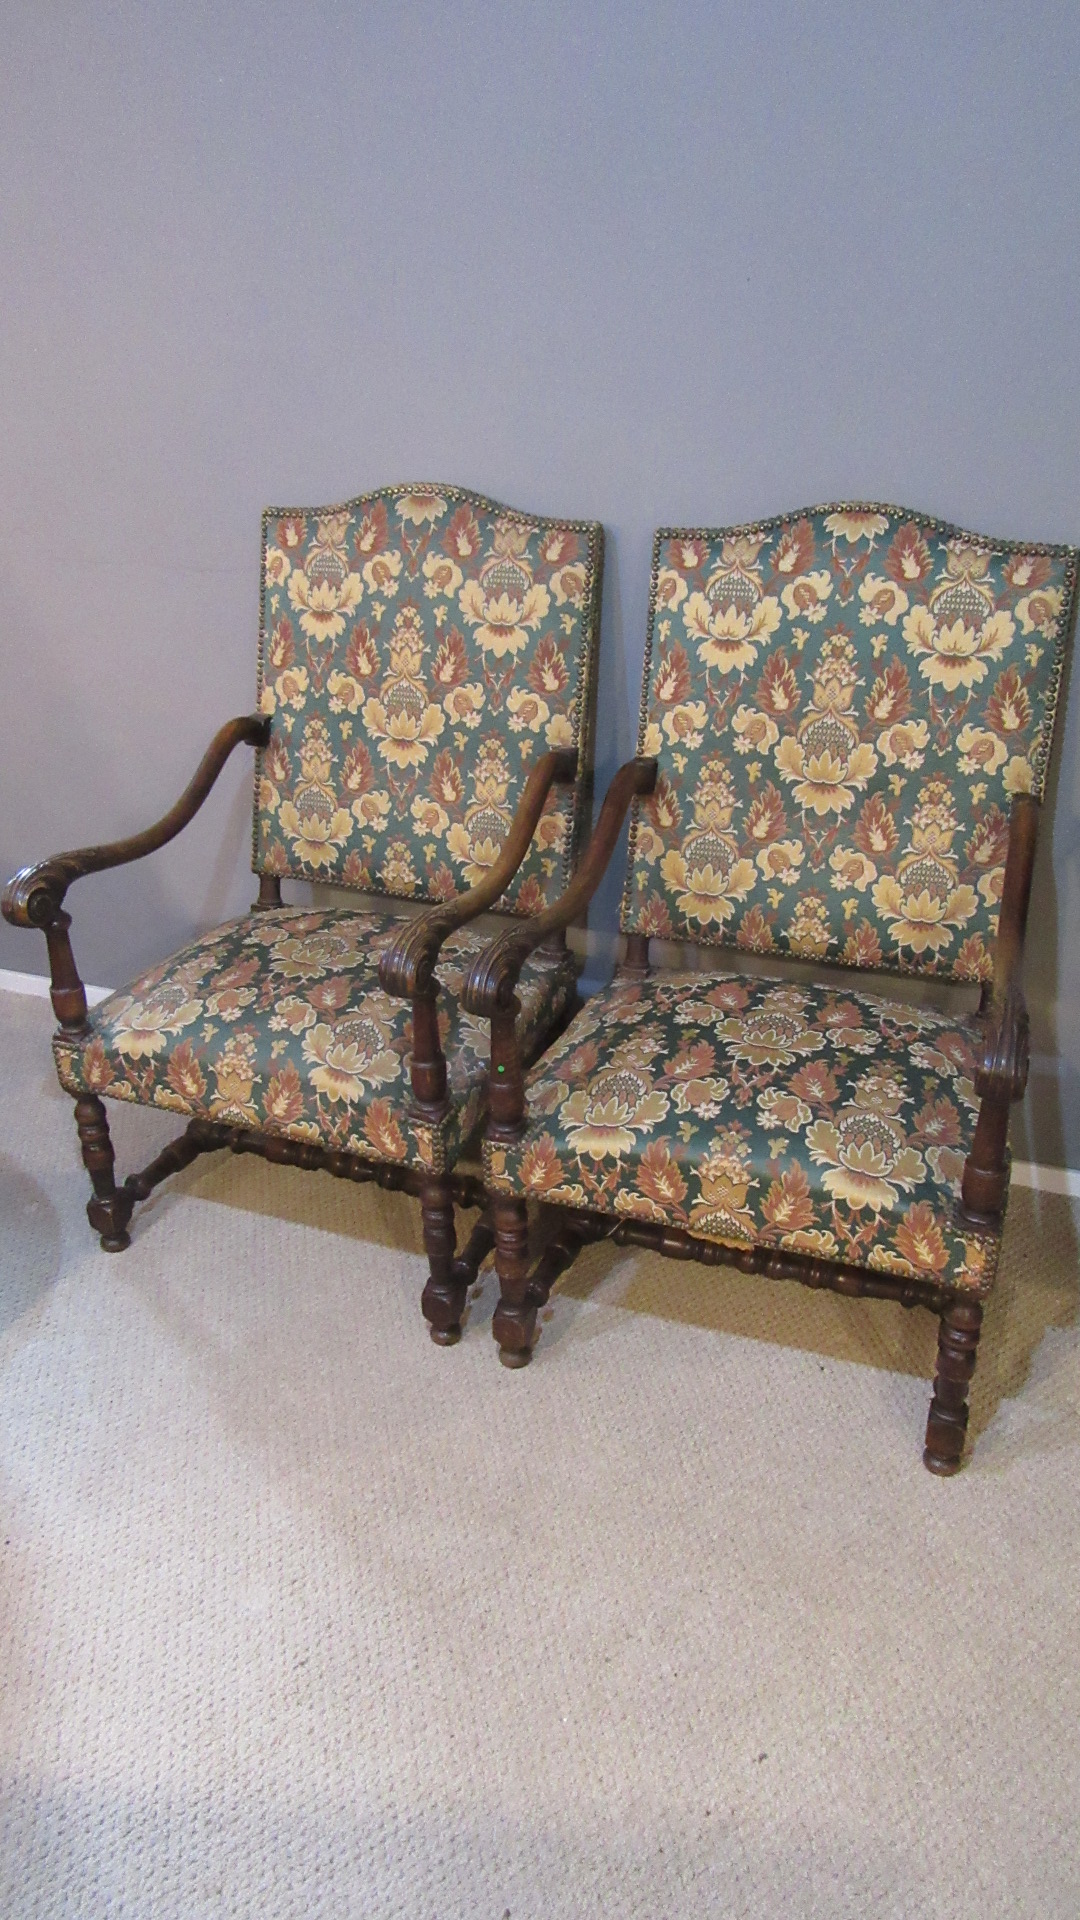 PAIR OF ANTIQUE GAINSBOROUGH STYLE OPEN ARMCHAIRS